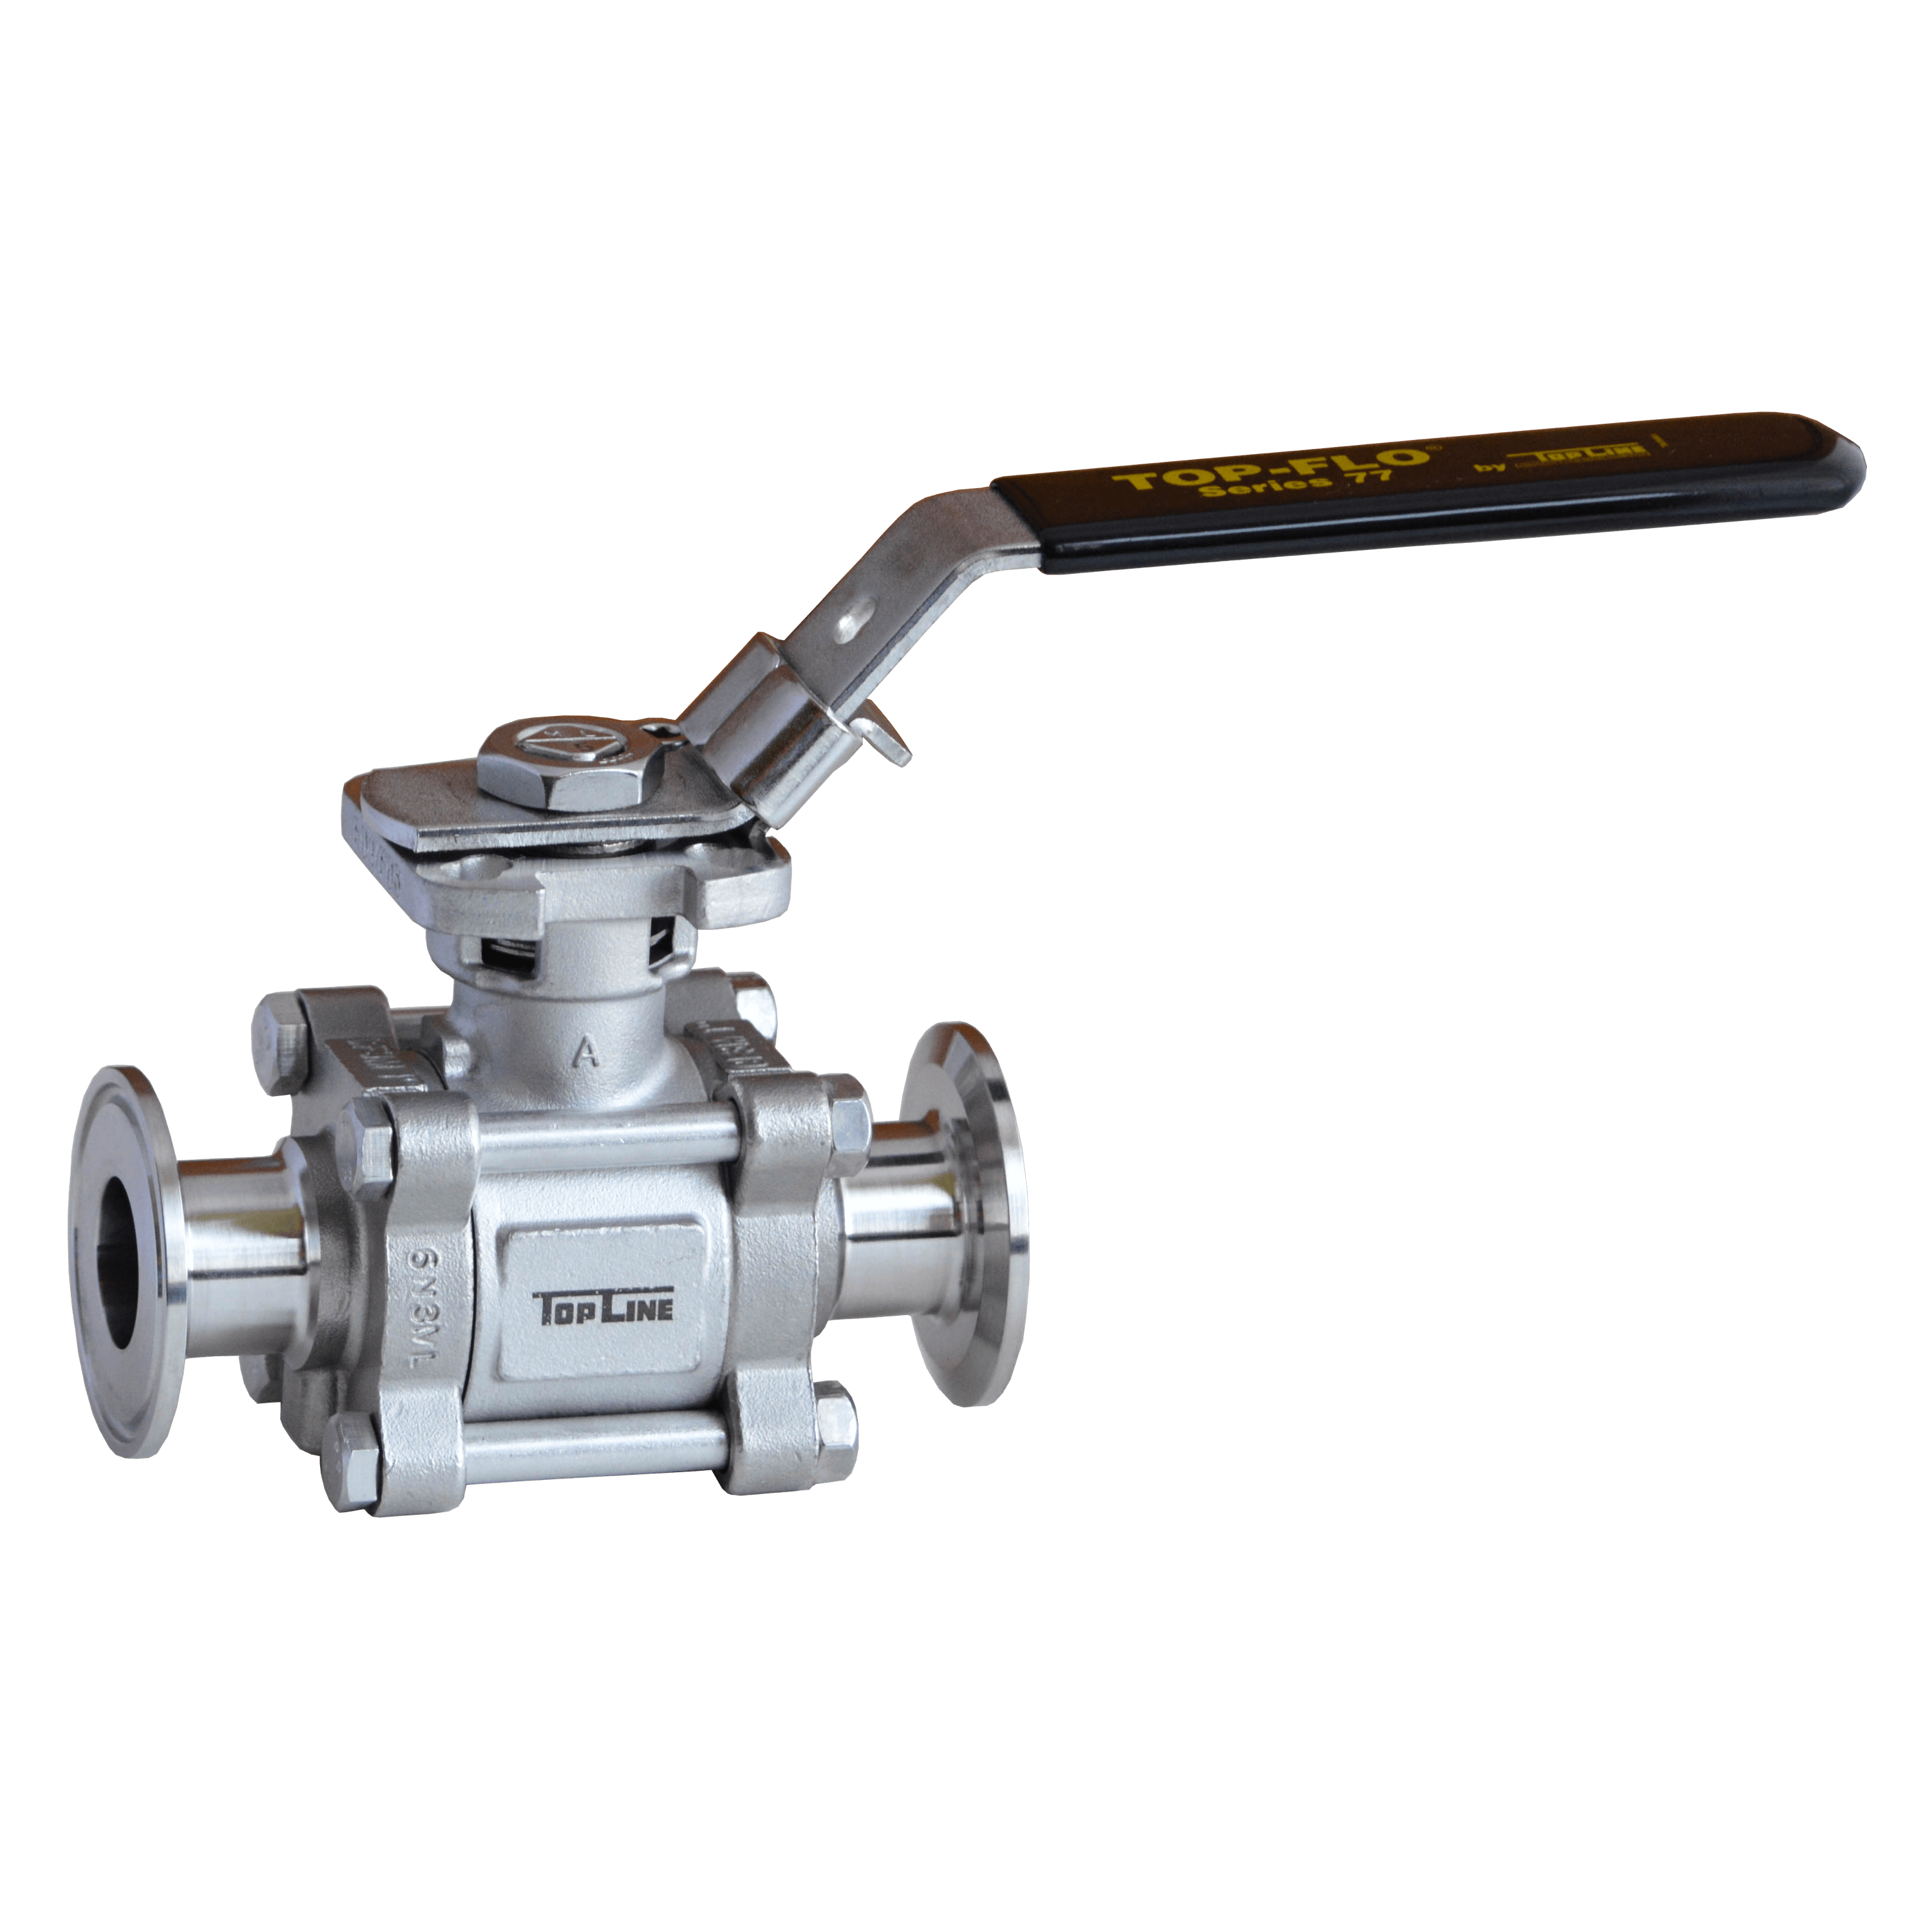 TOP-FLO® Series 77 Ball Valves